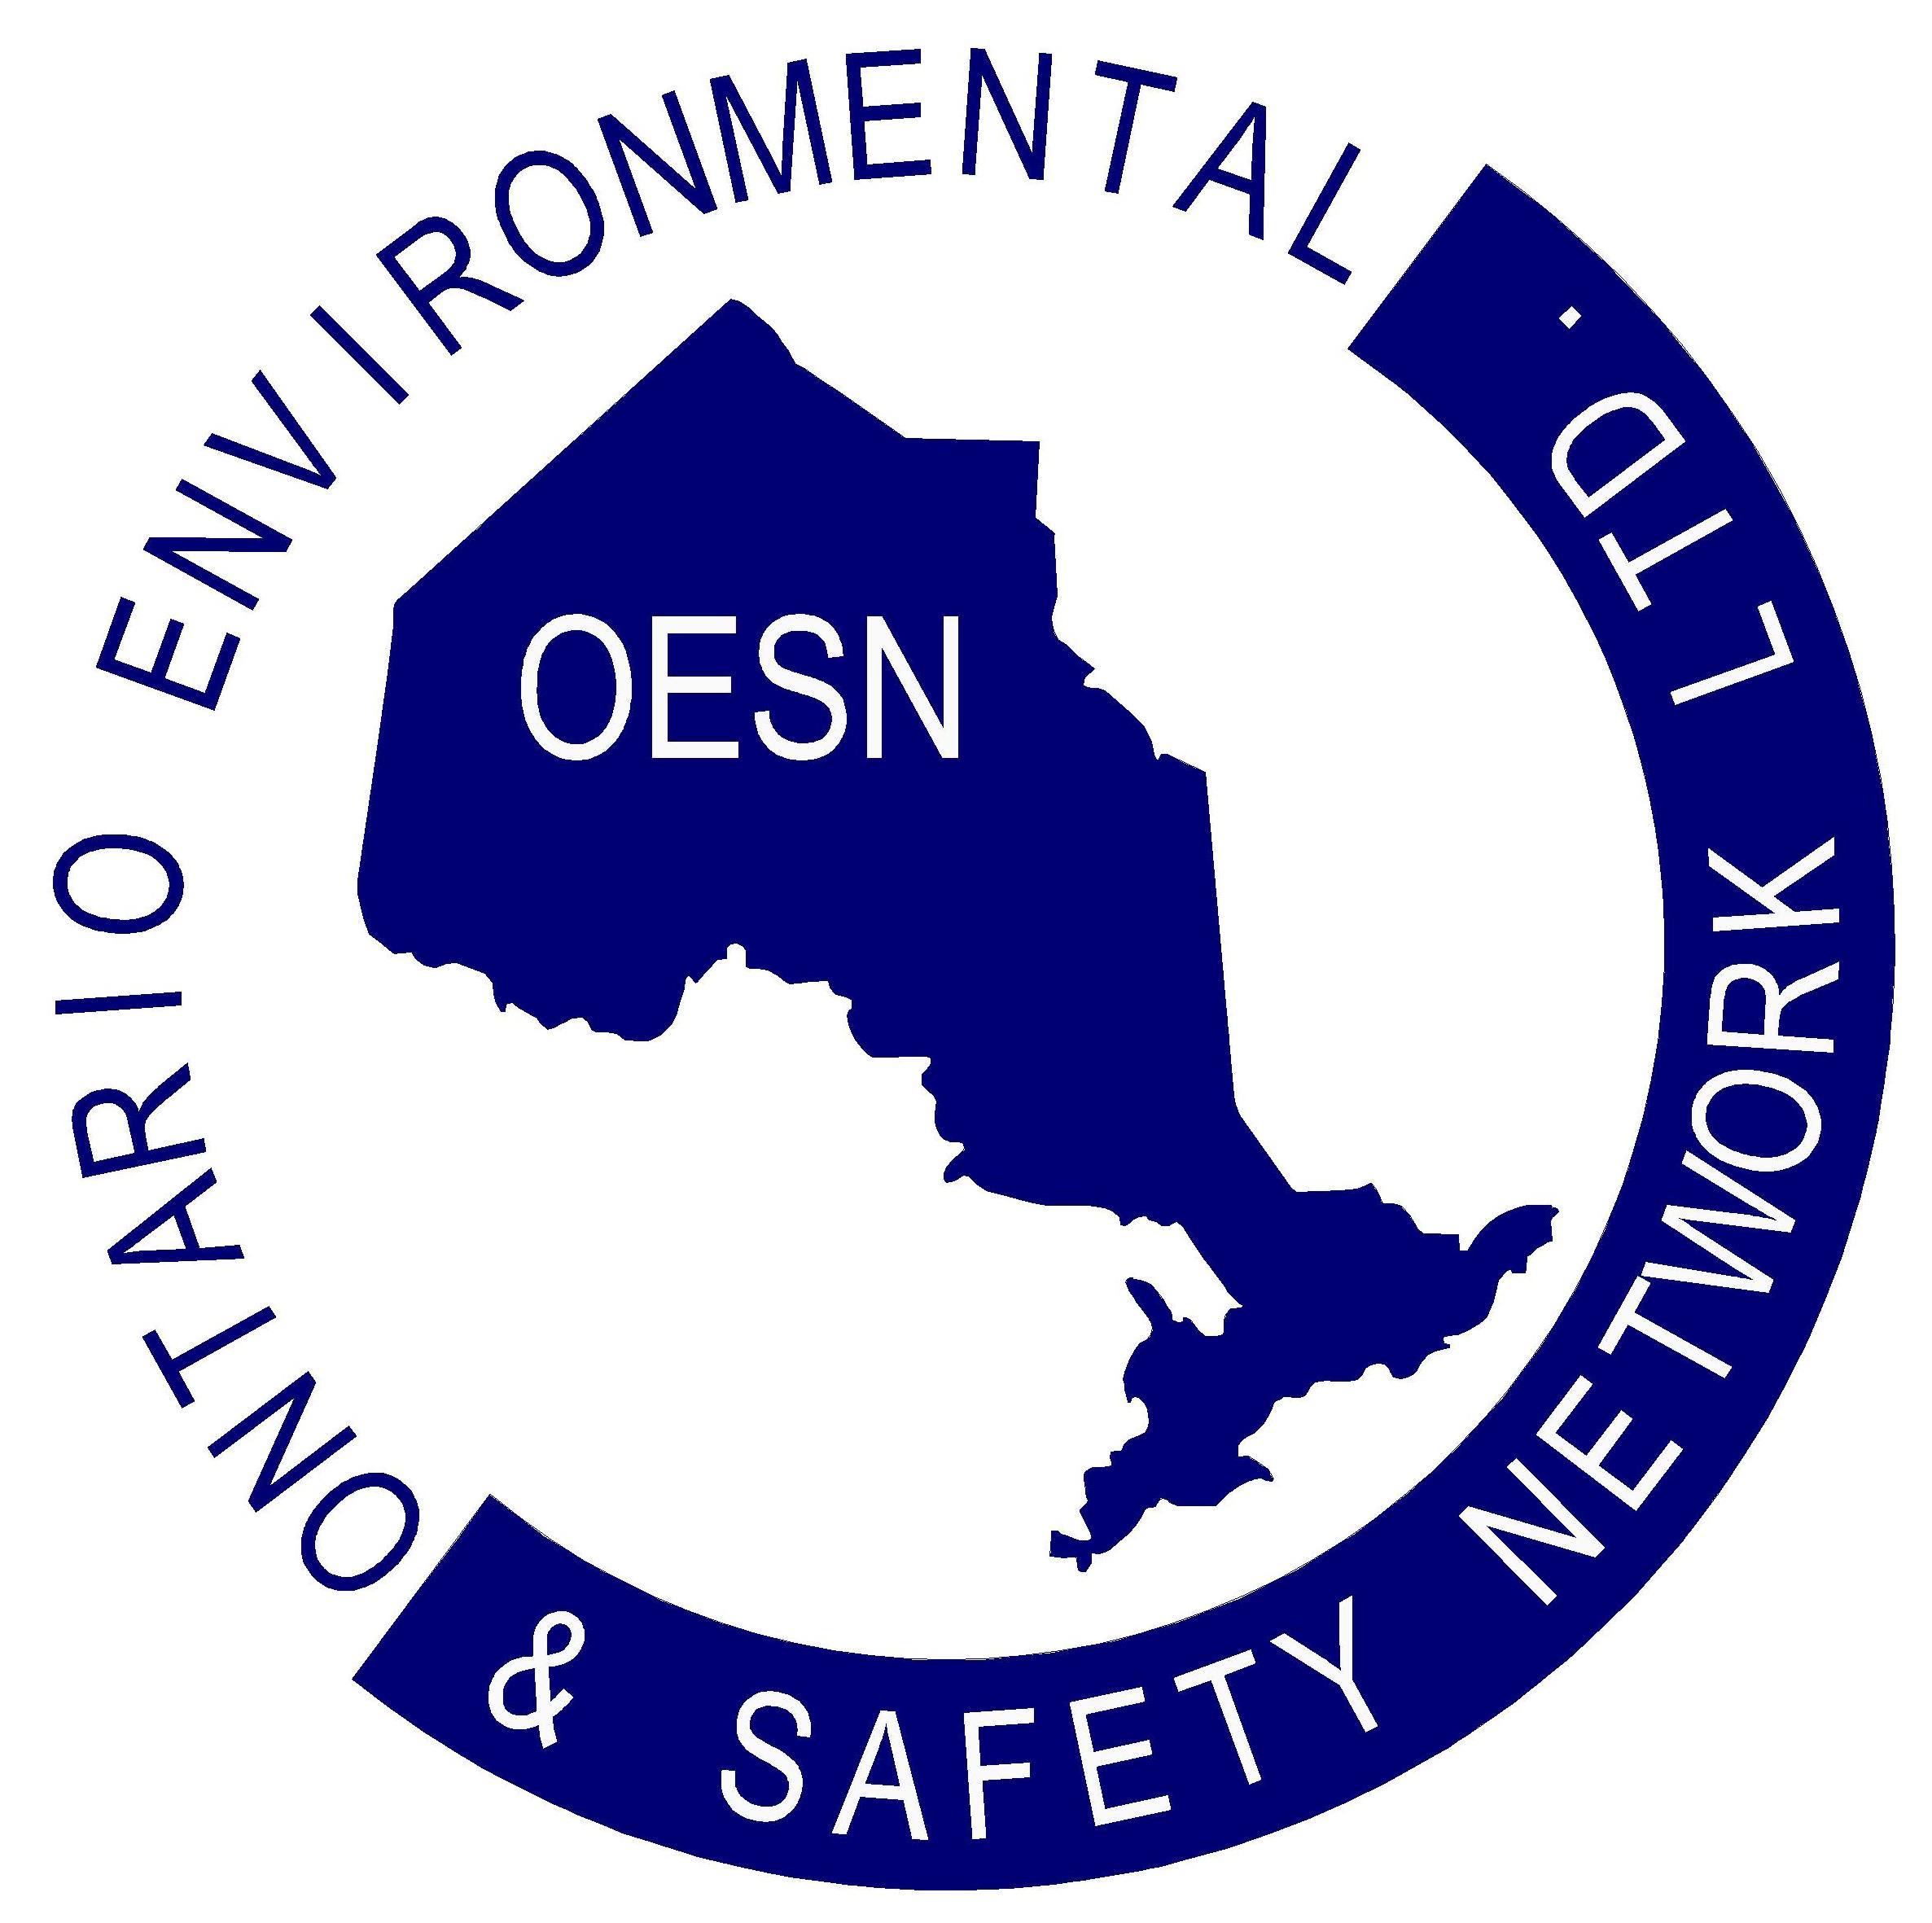 Ontario Environmental & Safety Network Ltd.